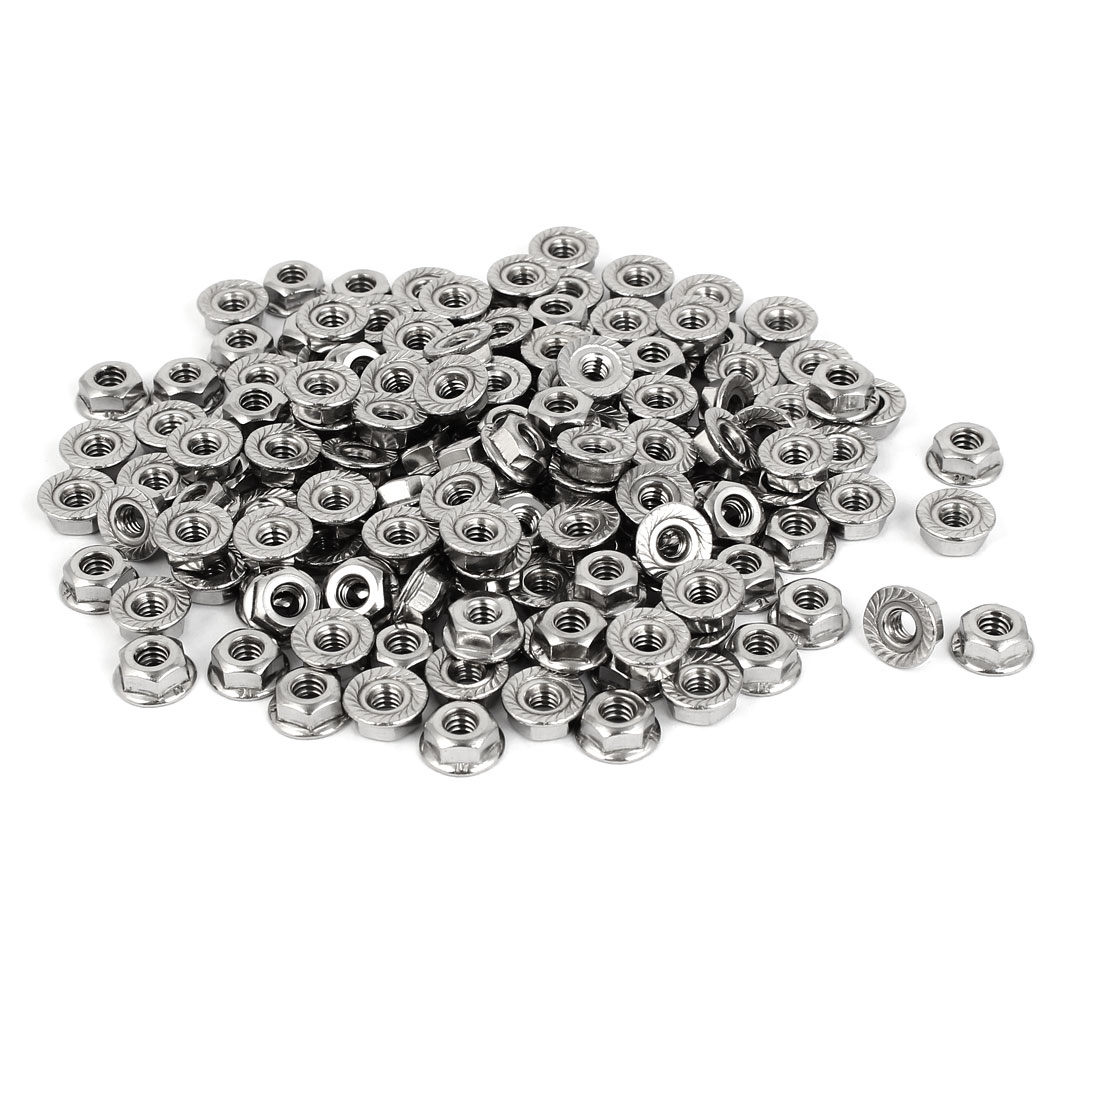 "3/16""-24 304 Stainless Steel Serrated Flange Hex Machine Screw Lock Nuts 200pcs"